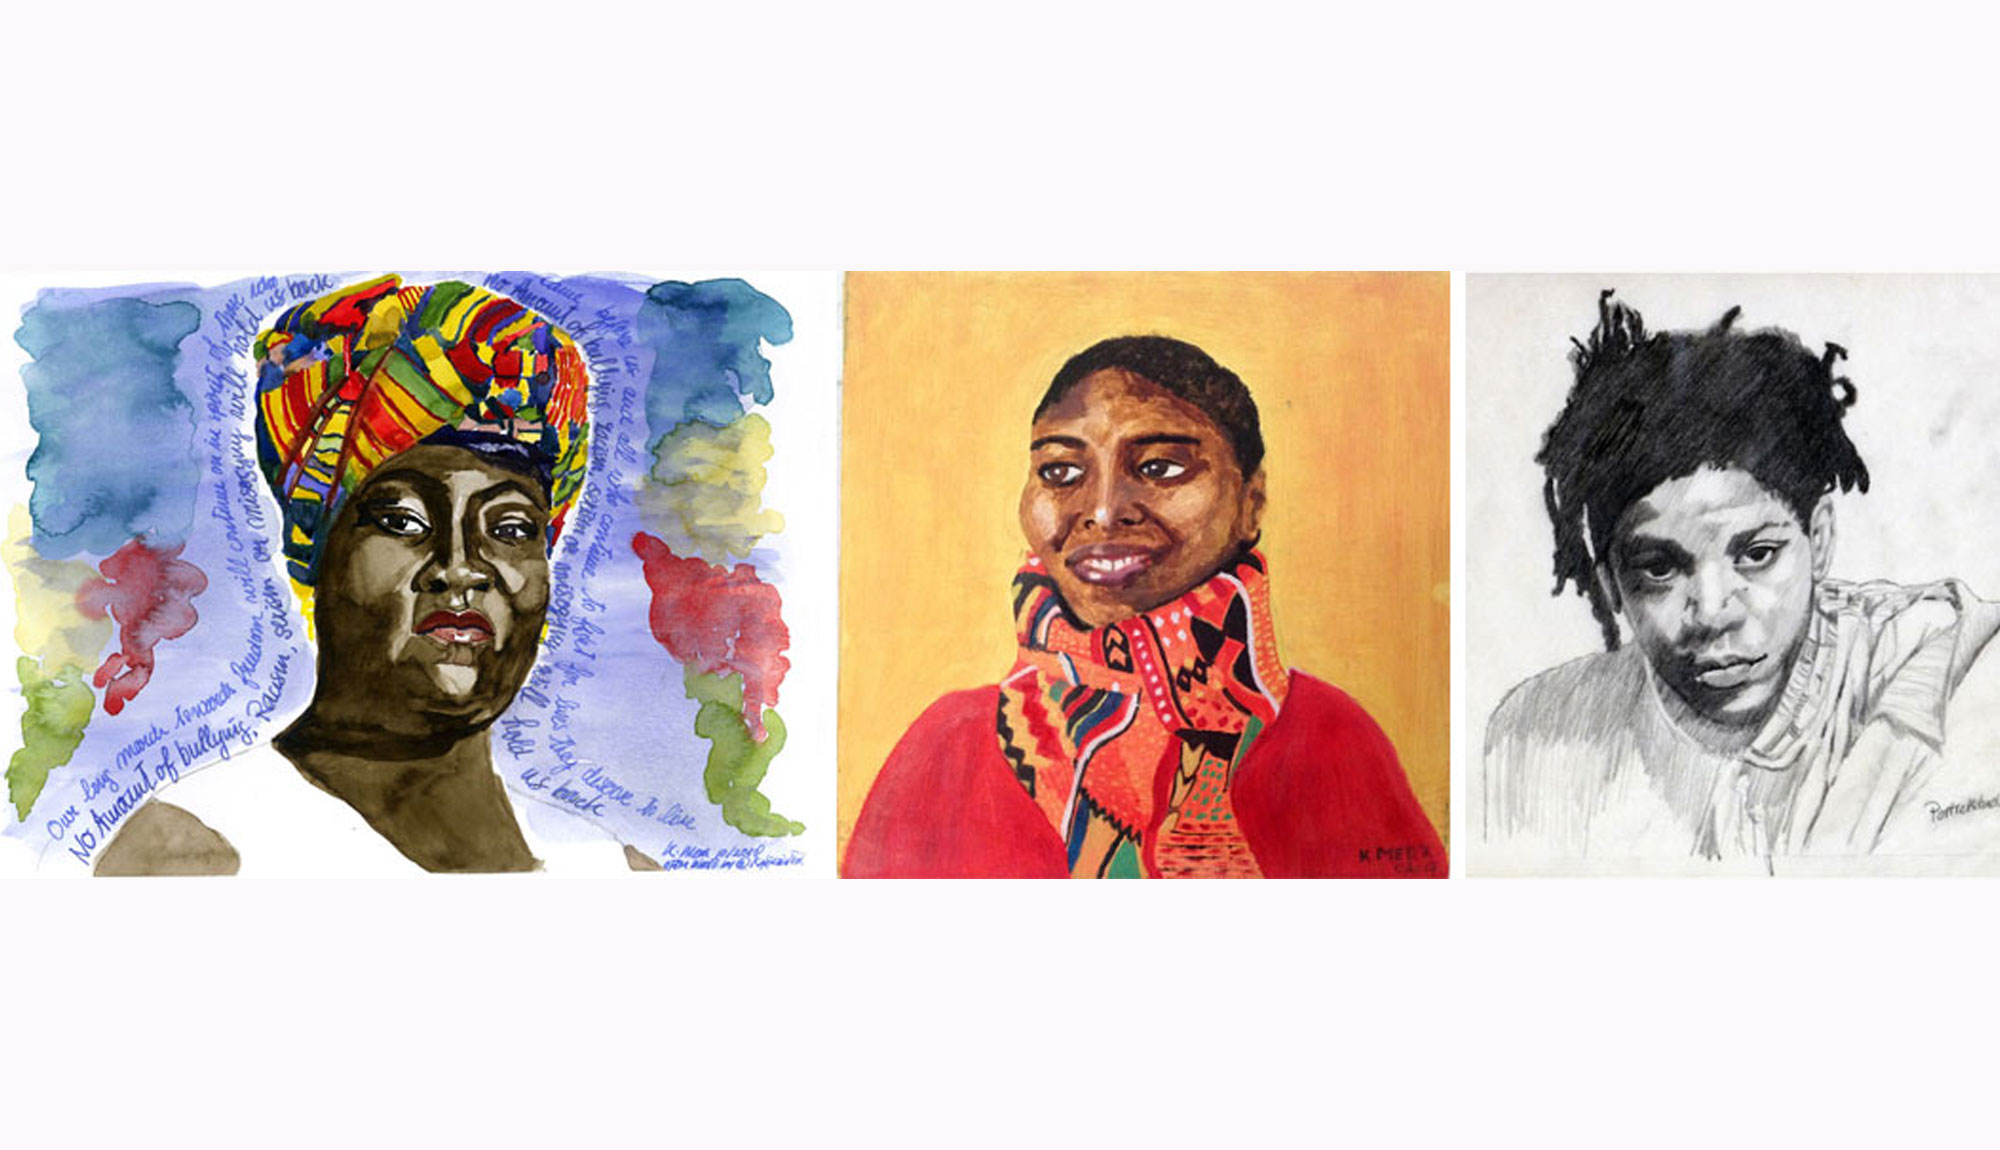 Caliz Studios | Painting Portraits as a story. Create art from your story in a beautiful book